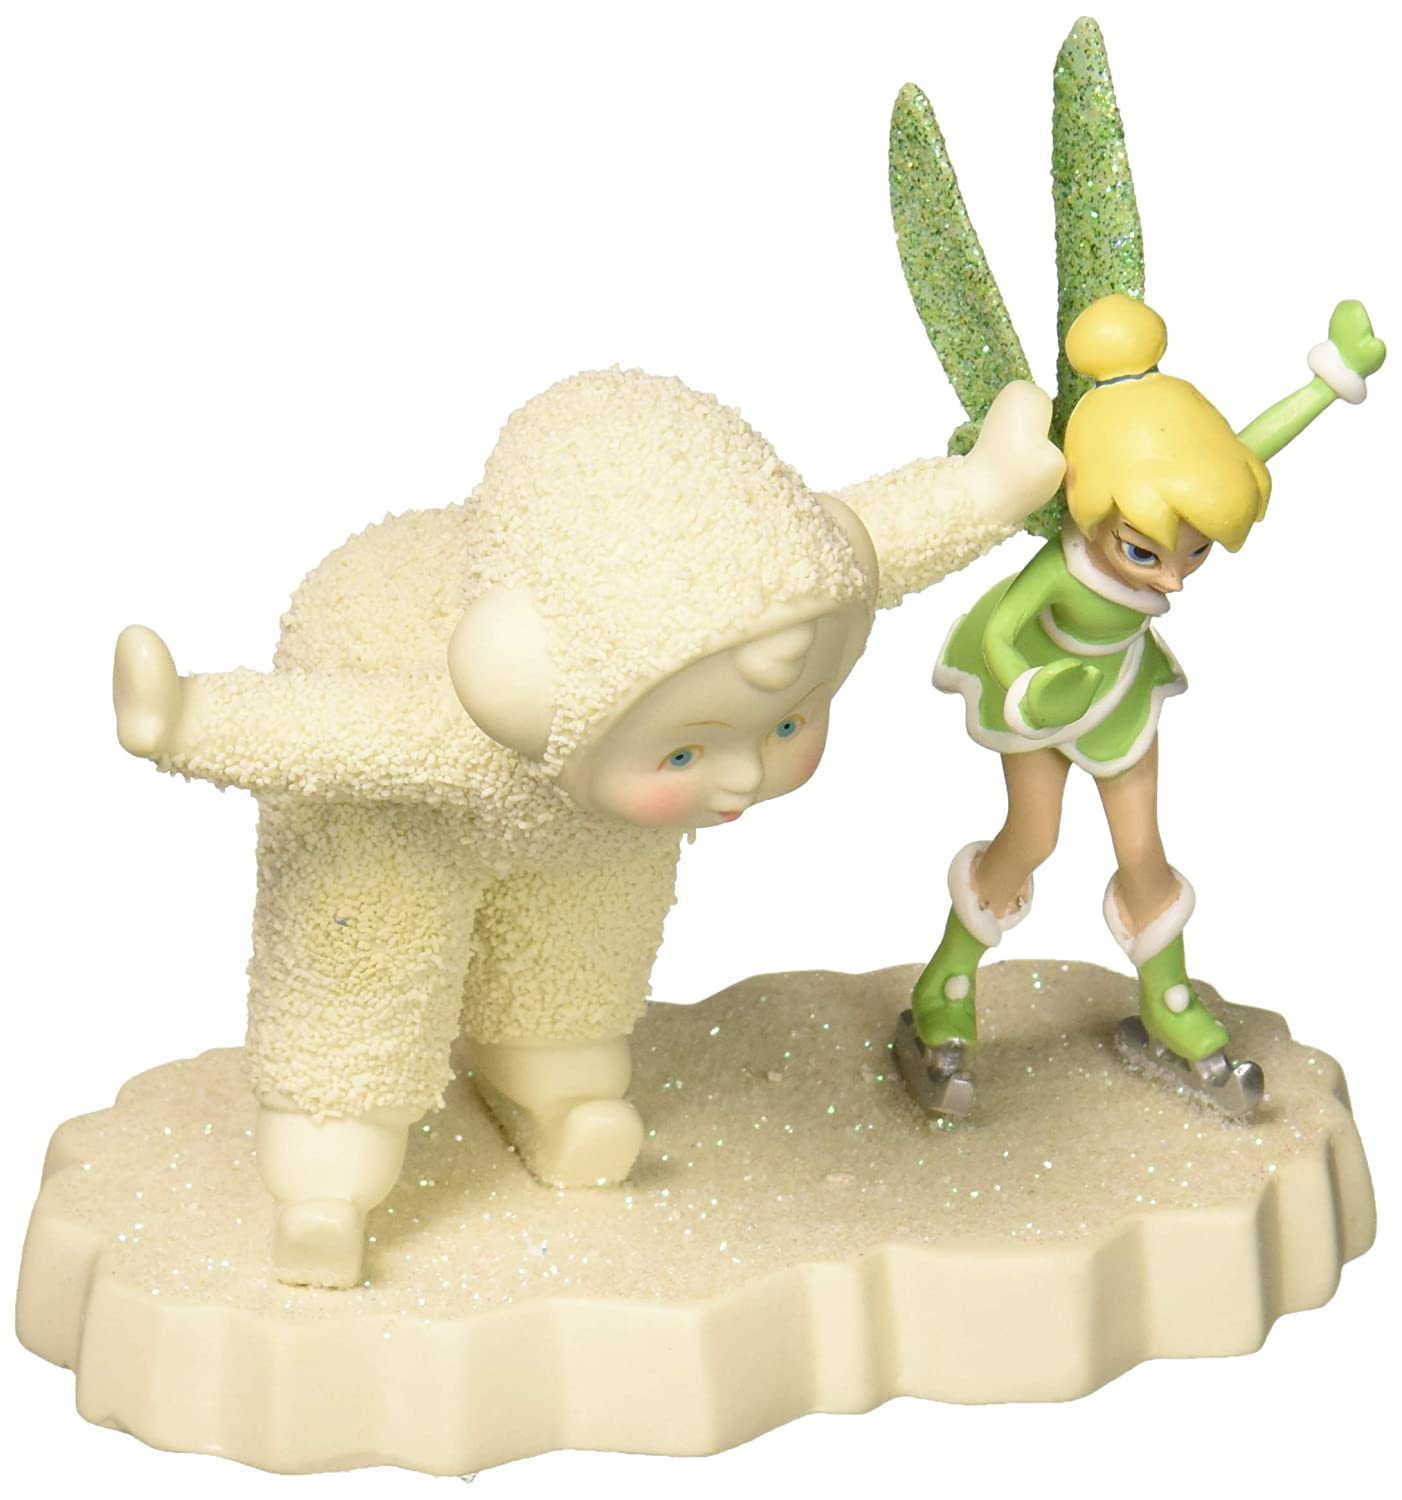 Department 56 Snowbabies and Disney Skating with Tinker Bell Porcelain Figurine, 4